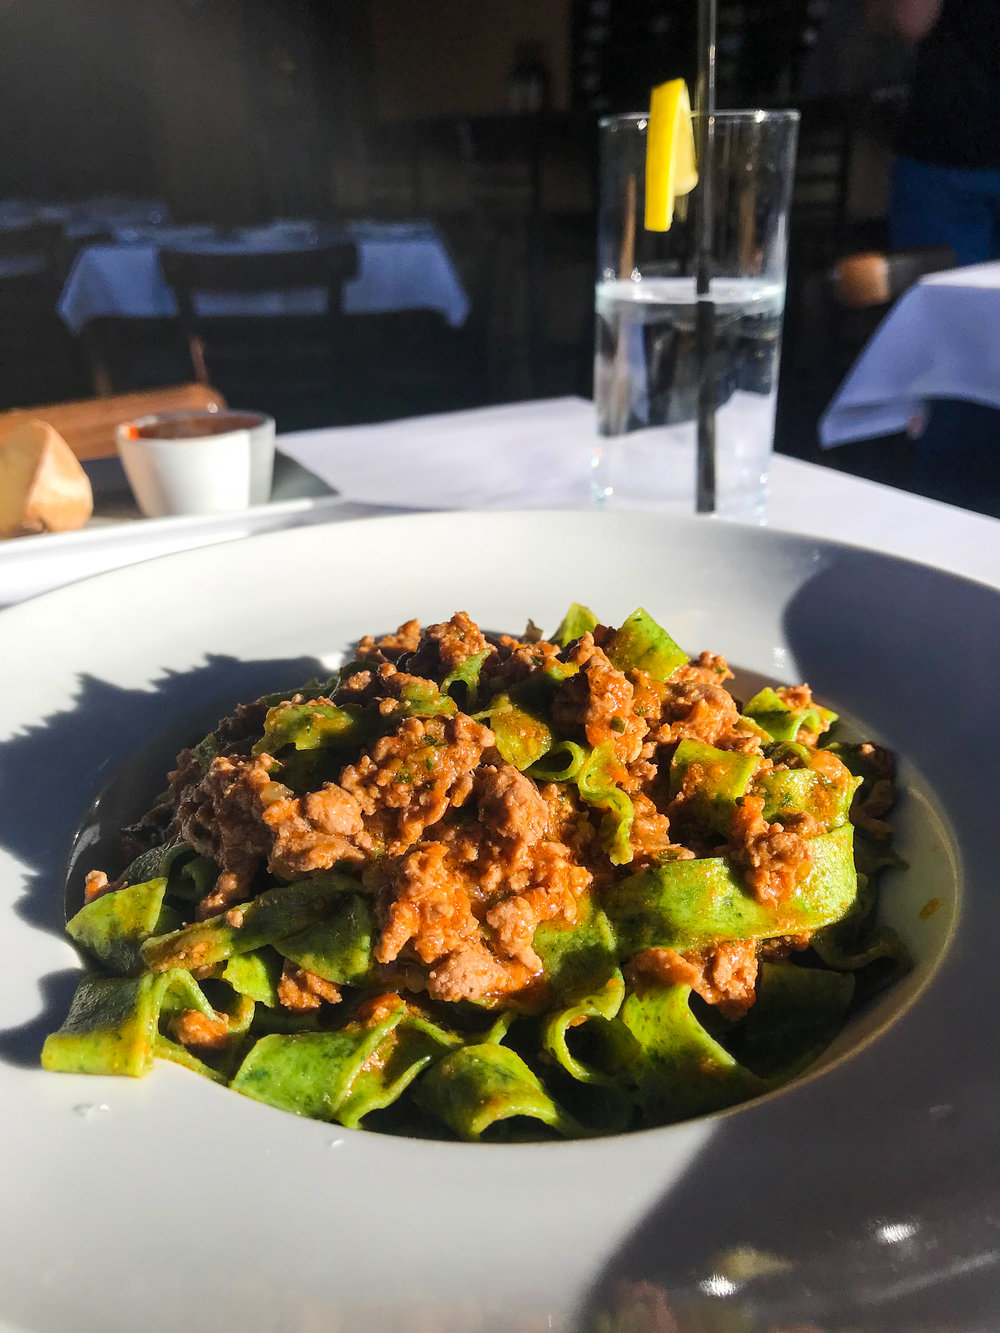 Pappardelle all'Anatra from Osteria Mamma - Green spinach pappardelle in duck ragú.$19.25